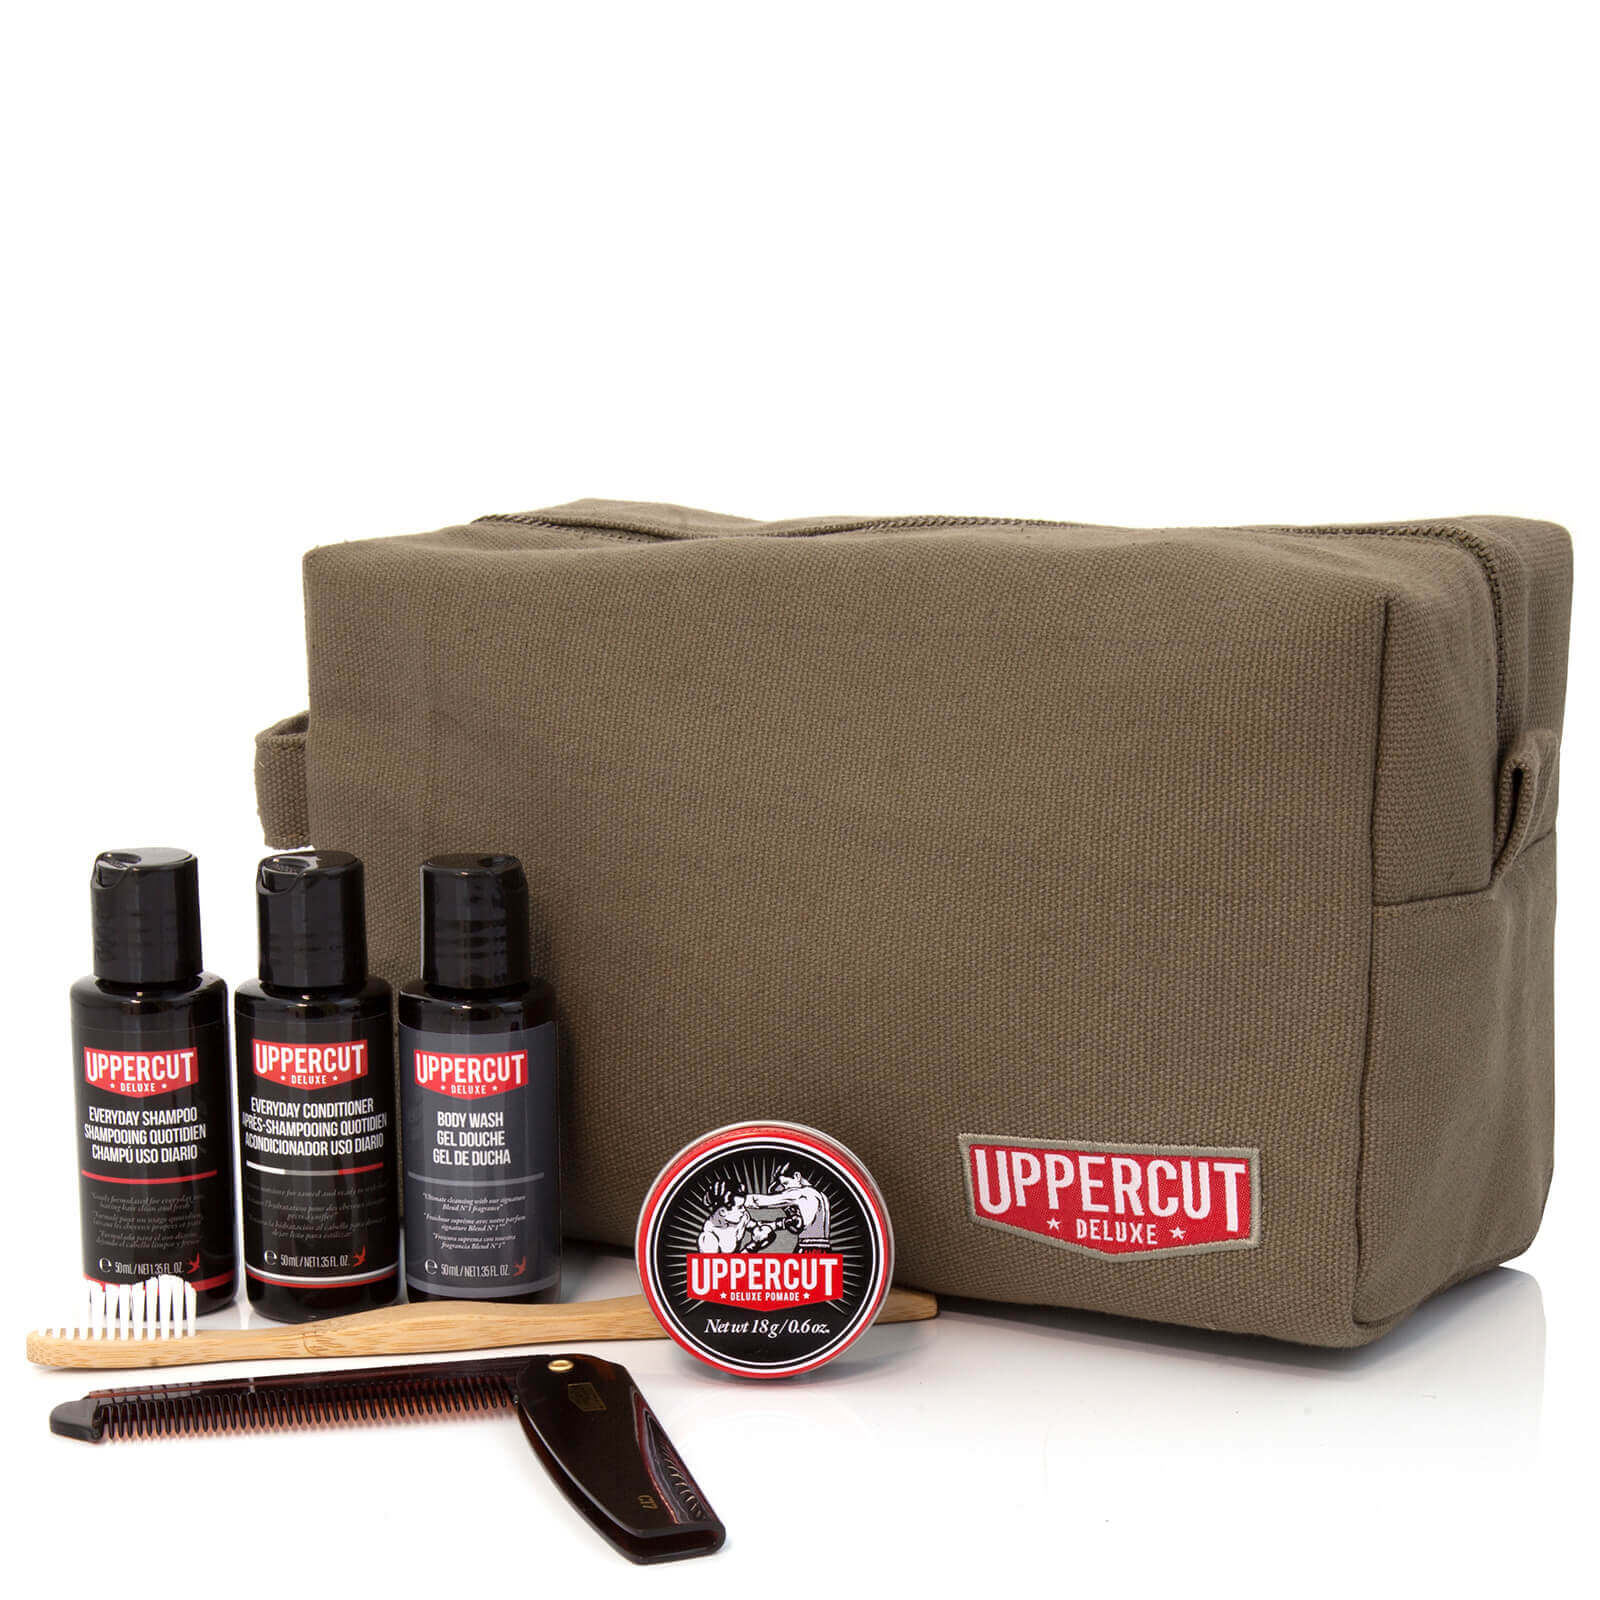 d4e5b8e9f163a Uppercut Deluxe Wash Bag - Filled Army Green (Worth £48.00)